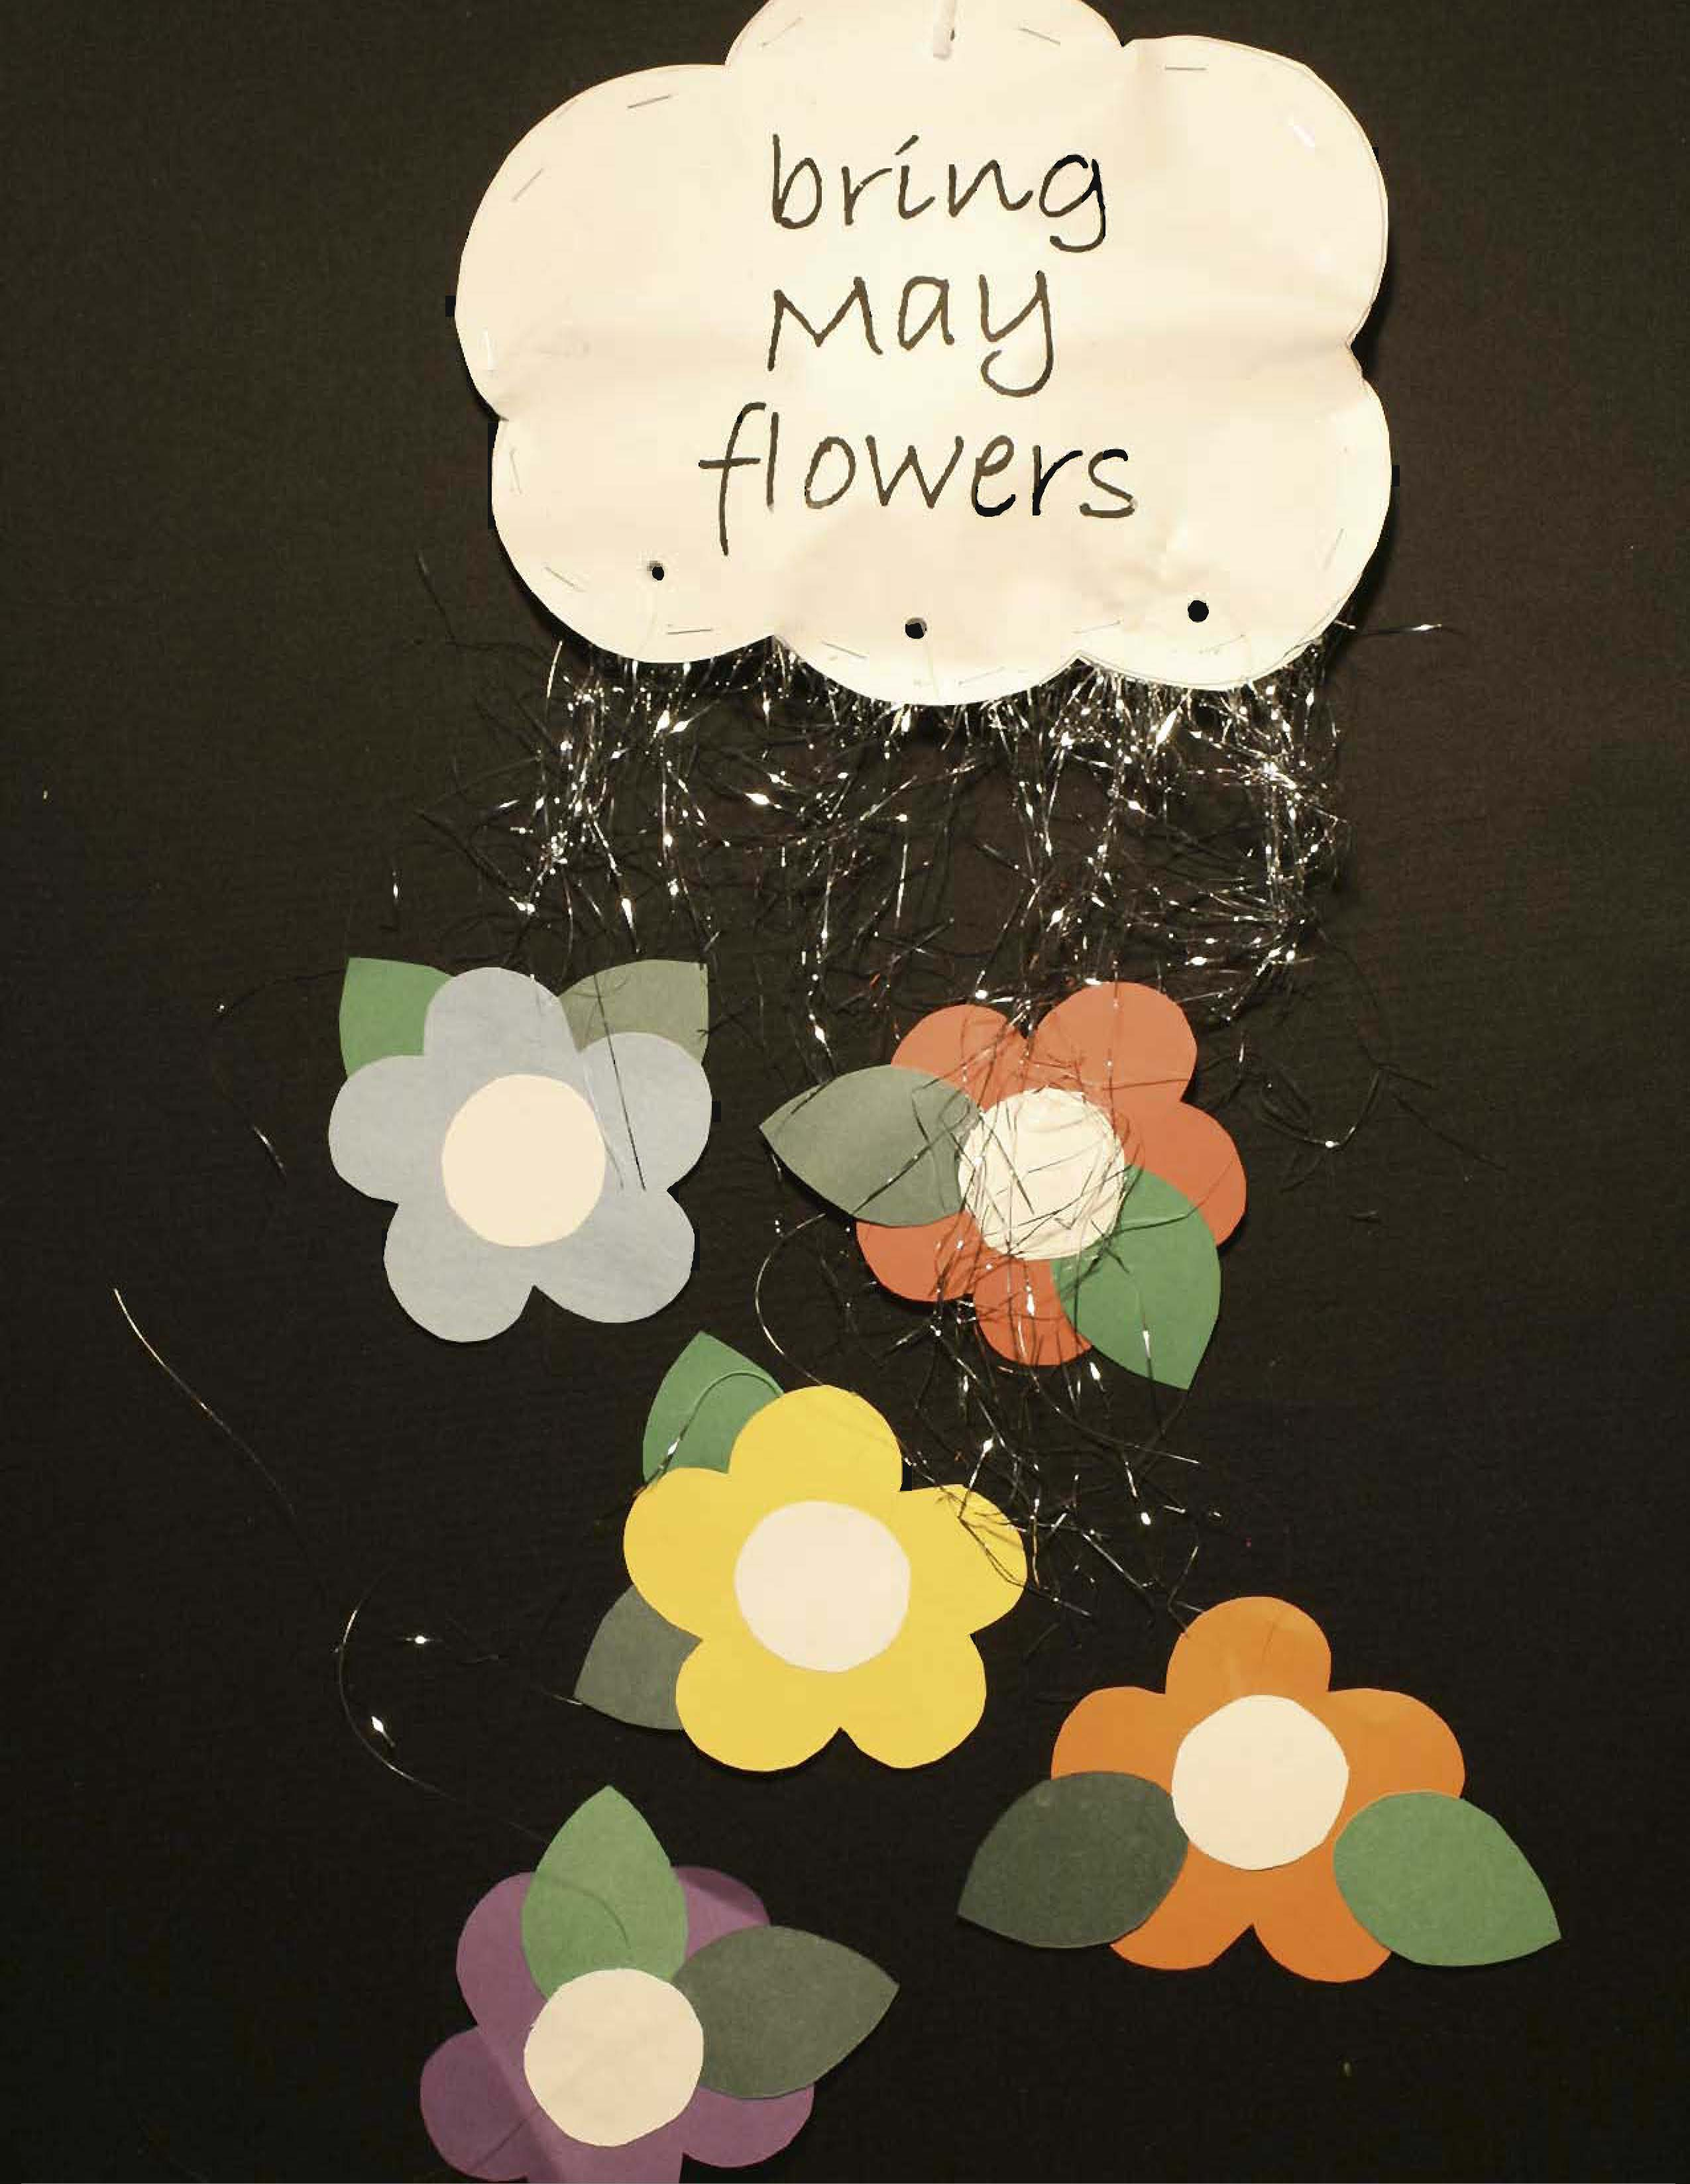 April showers bring May flowers art project